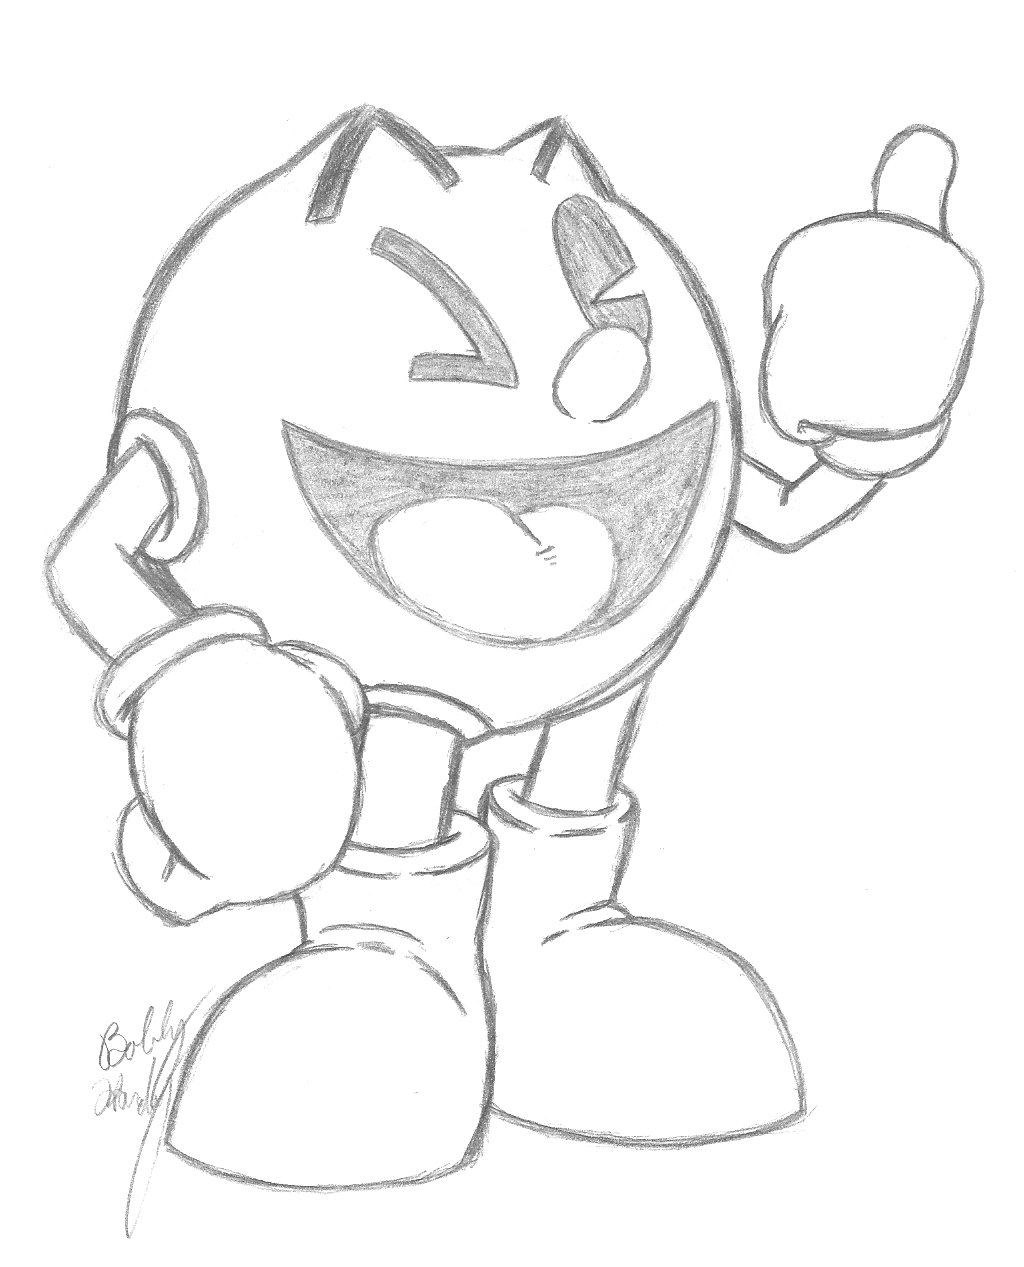 pac man pencil sketch by th3antiguardian on deviantart